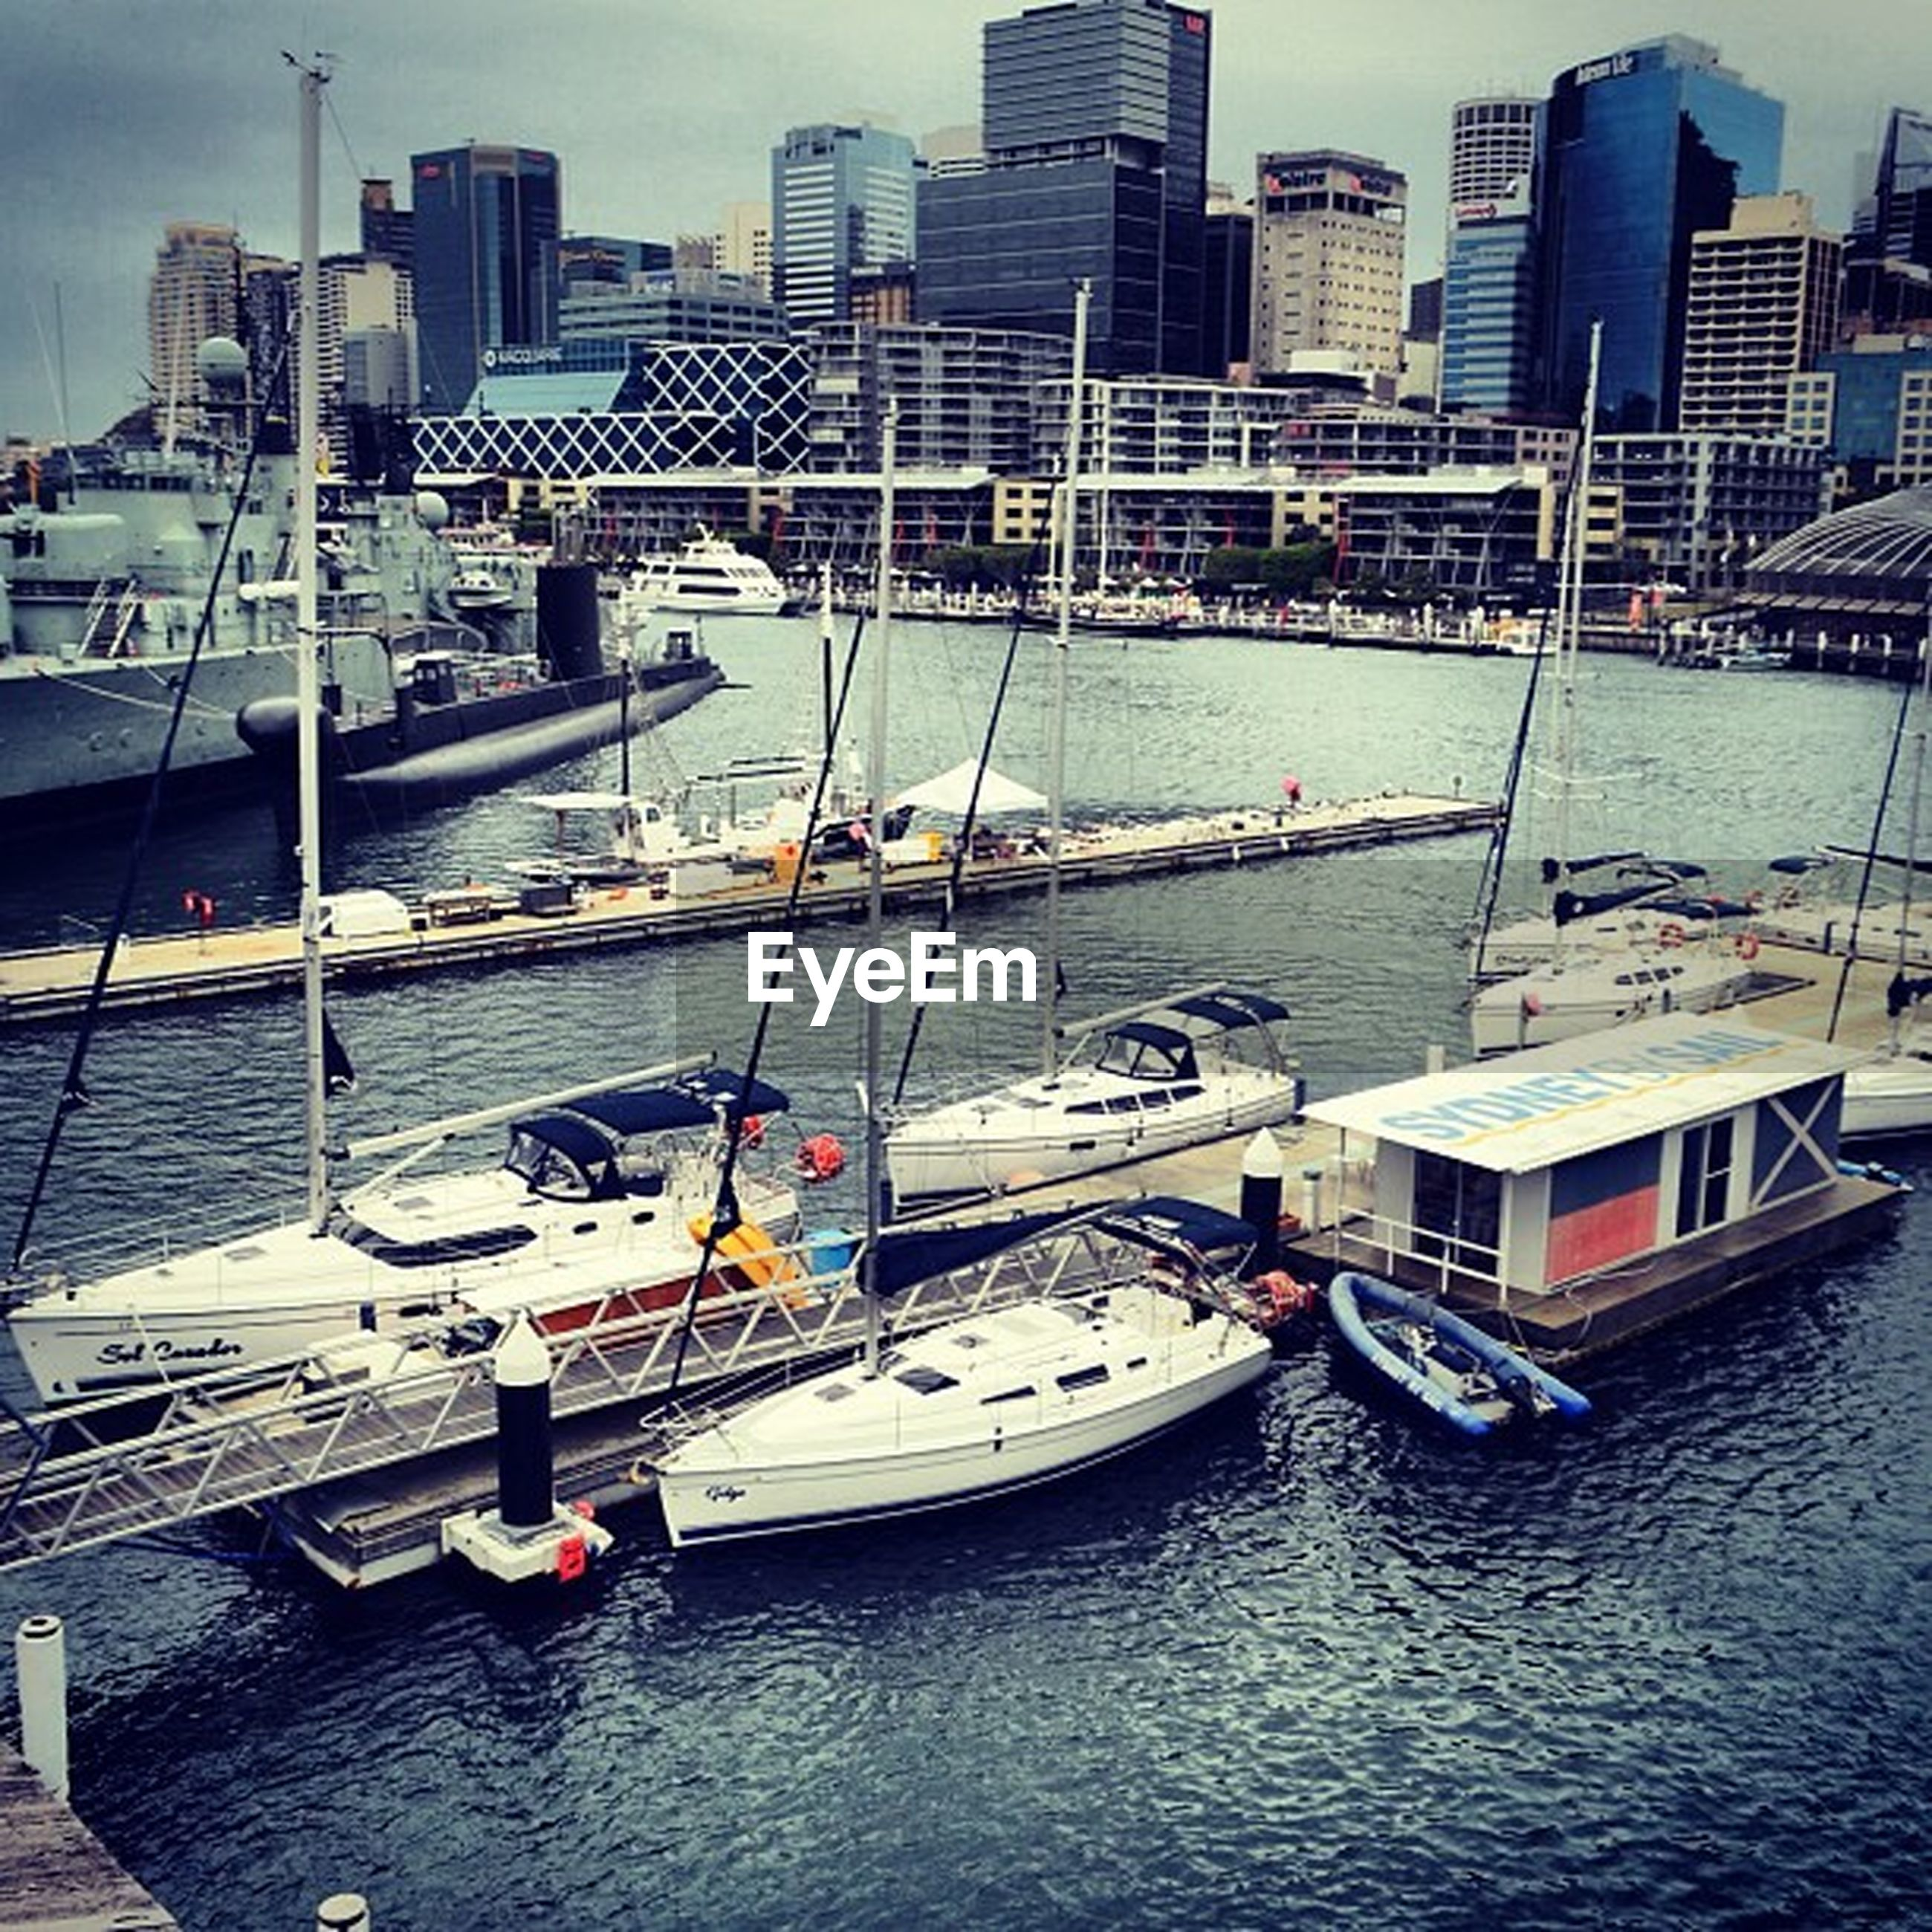 nautical vessel, building exterior, architecture, water, built structure, boat, waterfront, transportation, city, mode of transport, harbor, moored, river, skyscraper, sea, office building, day, sailboat, cityscape, urban skyline